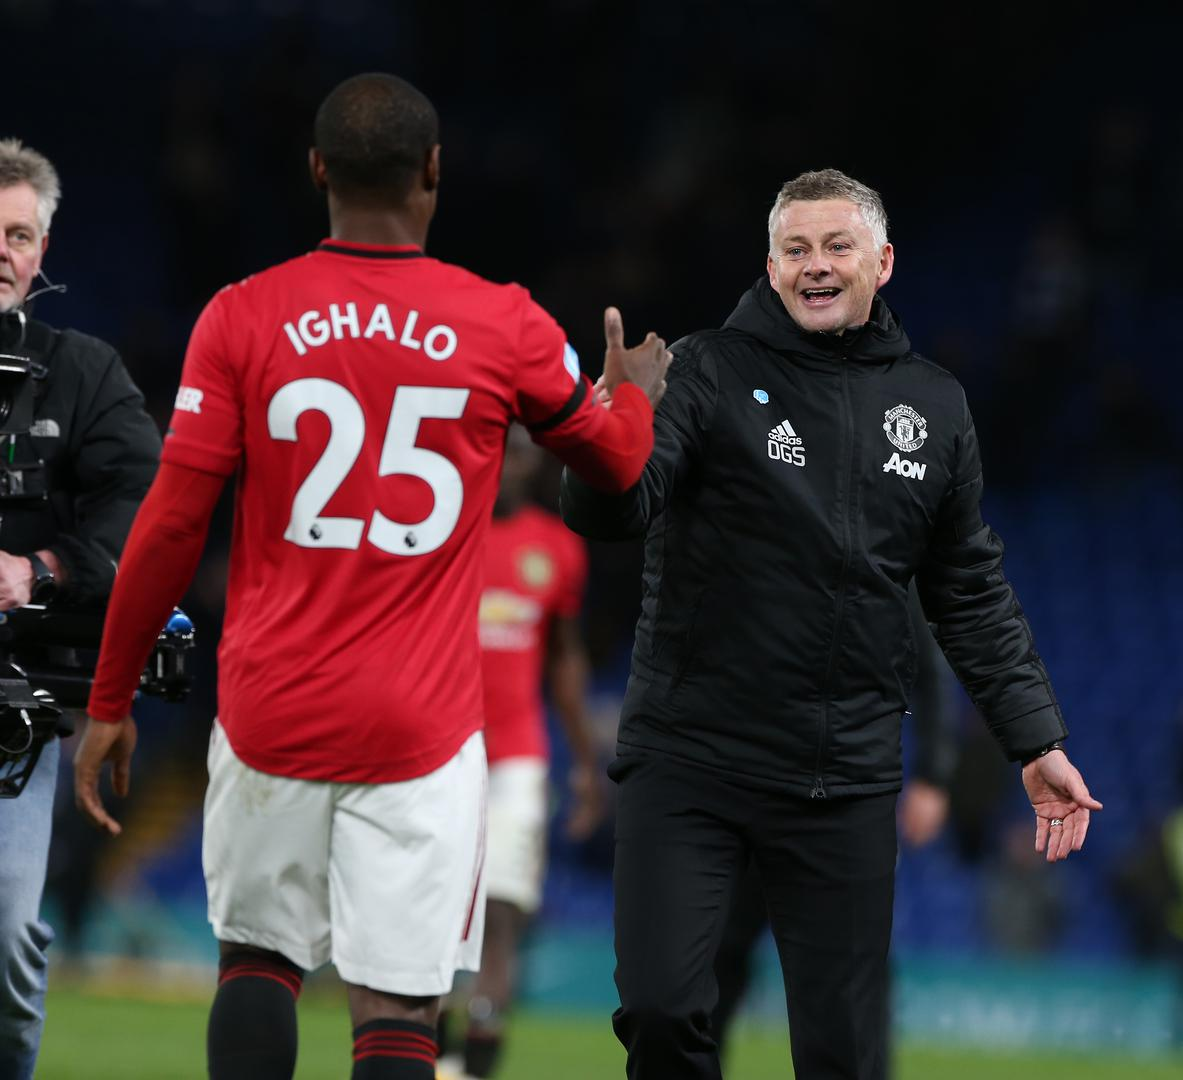 Odion Ighalo and Ole Gunnar Solskjaer celebrate United's win at Chelsea